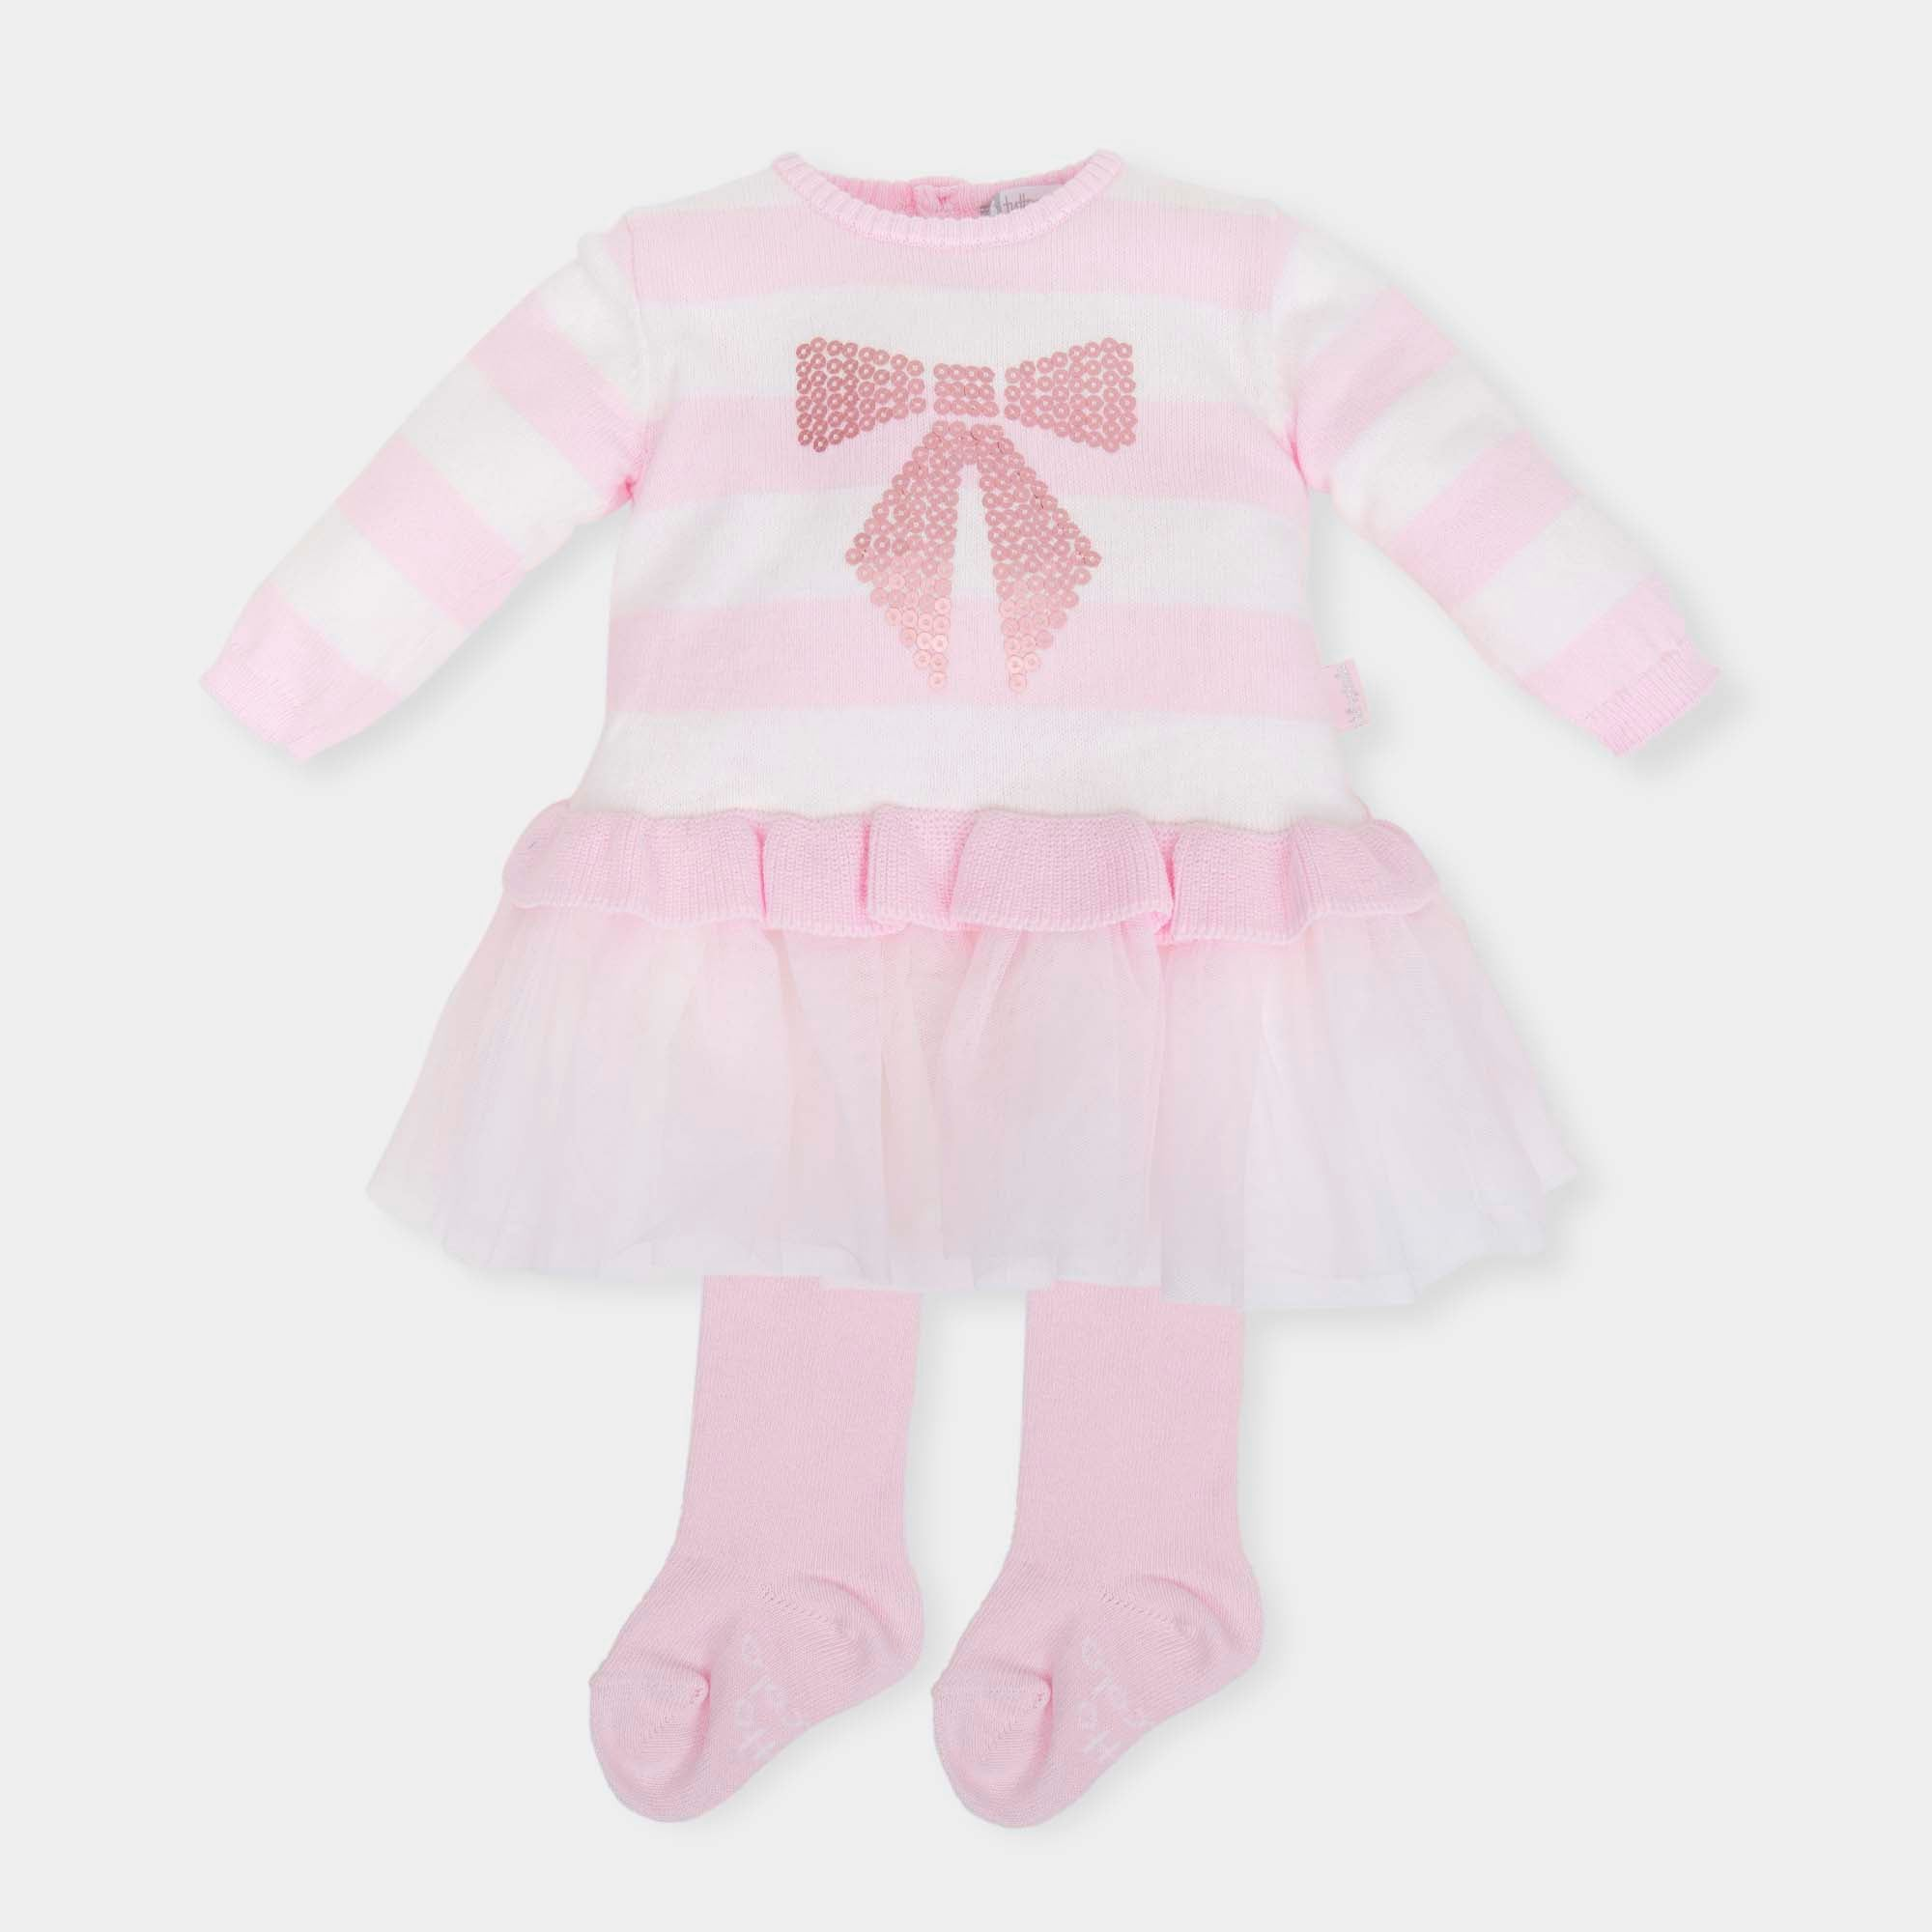 d0ada77b2d2 Tutto Piccolo 5220W18 P00 Pink Dress And Tights - Geoffrey and Joy